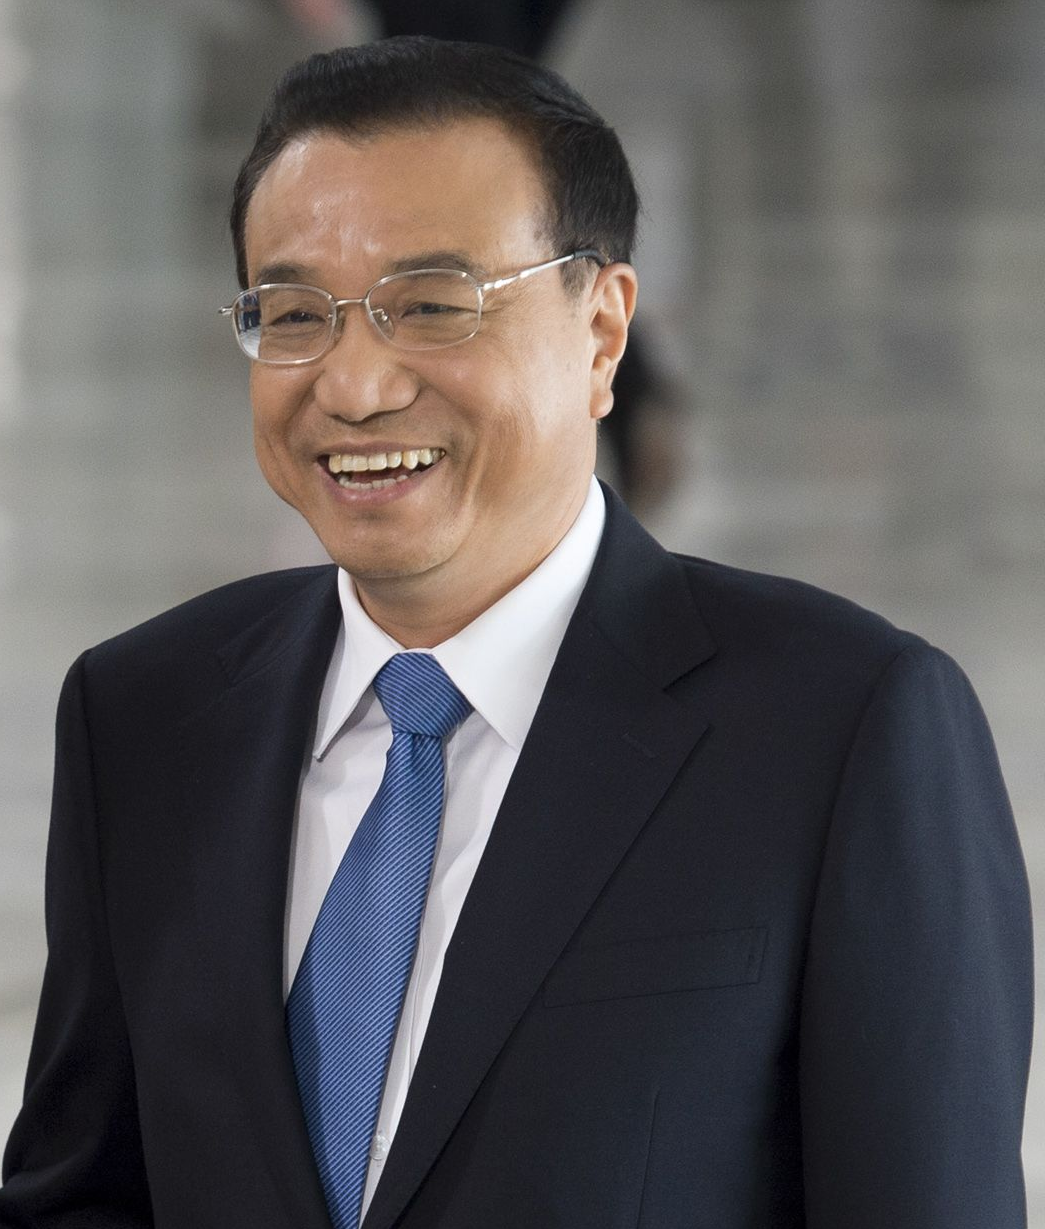 The 64-year old son of father (?) and mother(?) Li Keqiang in 2020 photo. Li Keqiang earned a  million dollar salary - leaving the net worth at 3 million in 2020